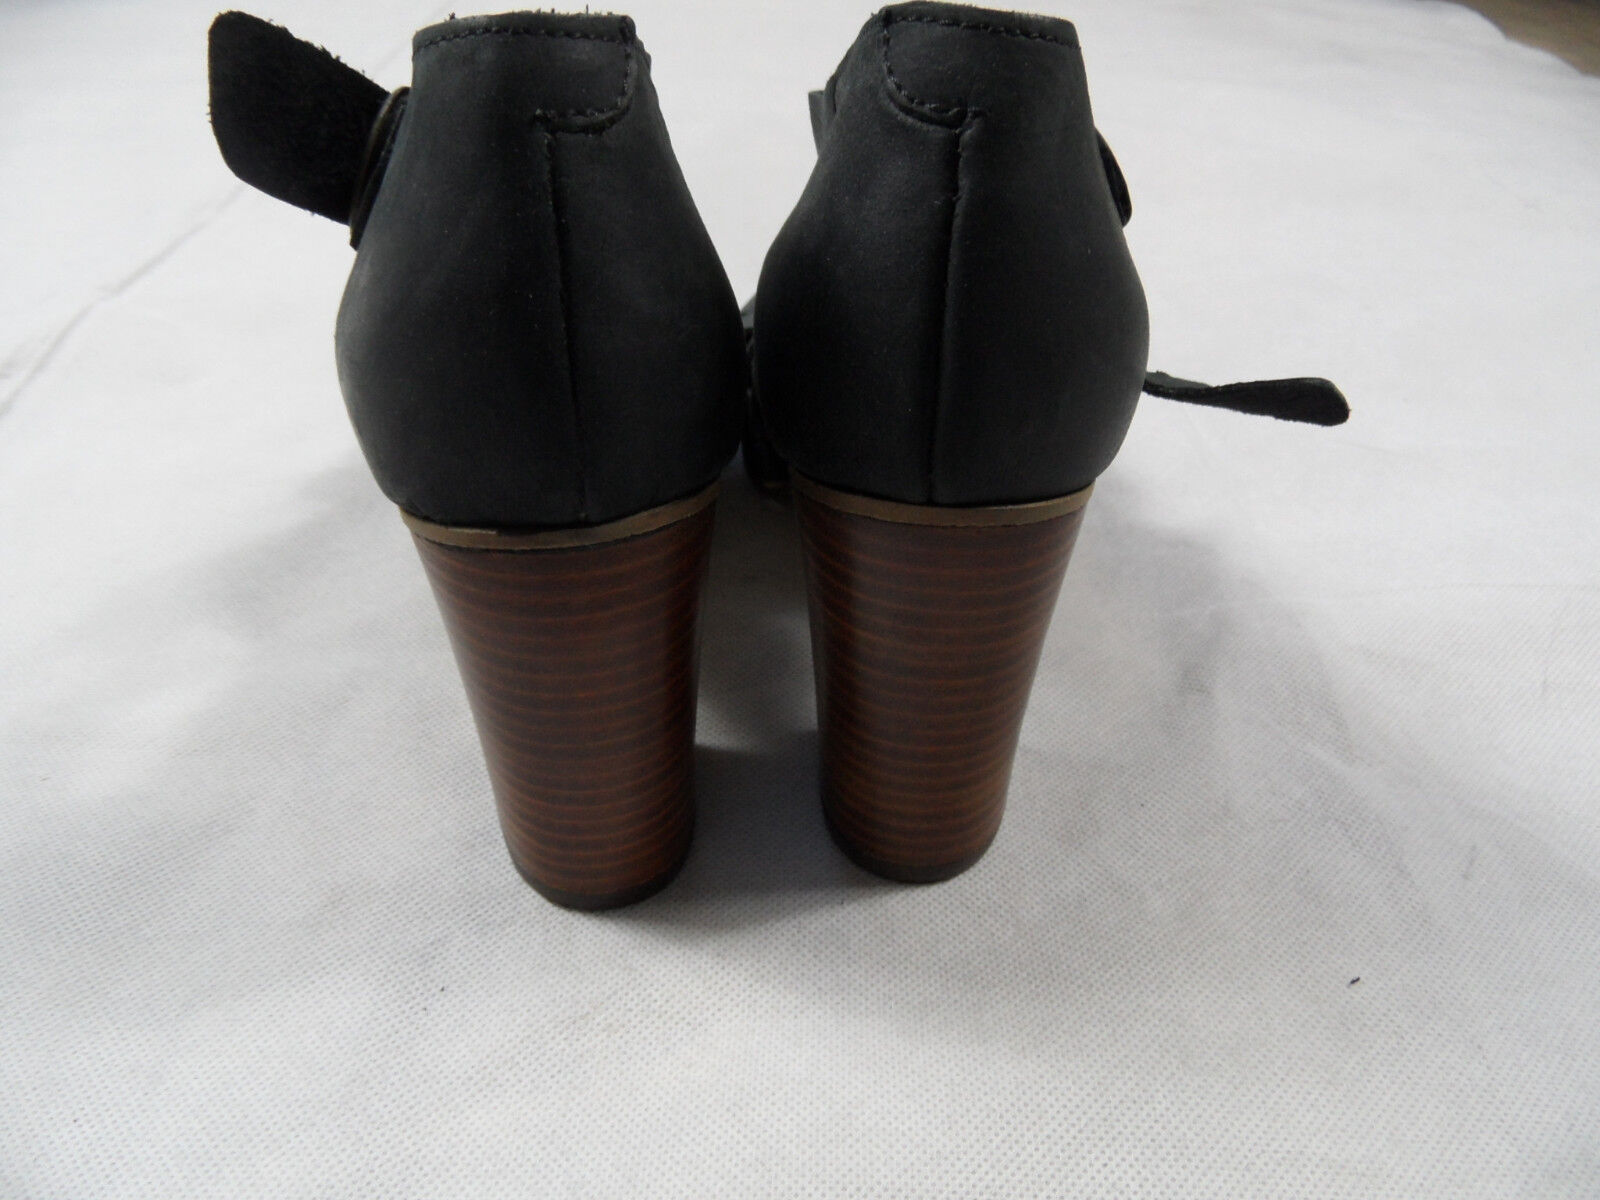 Office PUMPS London Chic PUMPS Office flechtoptik tacco ANTRACITE mis. 37 NUOVO bb1018 b9dd50